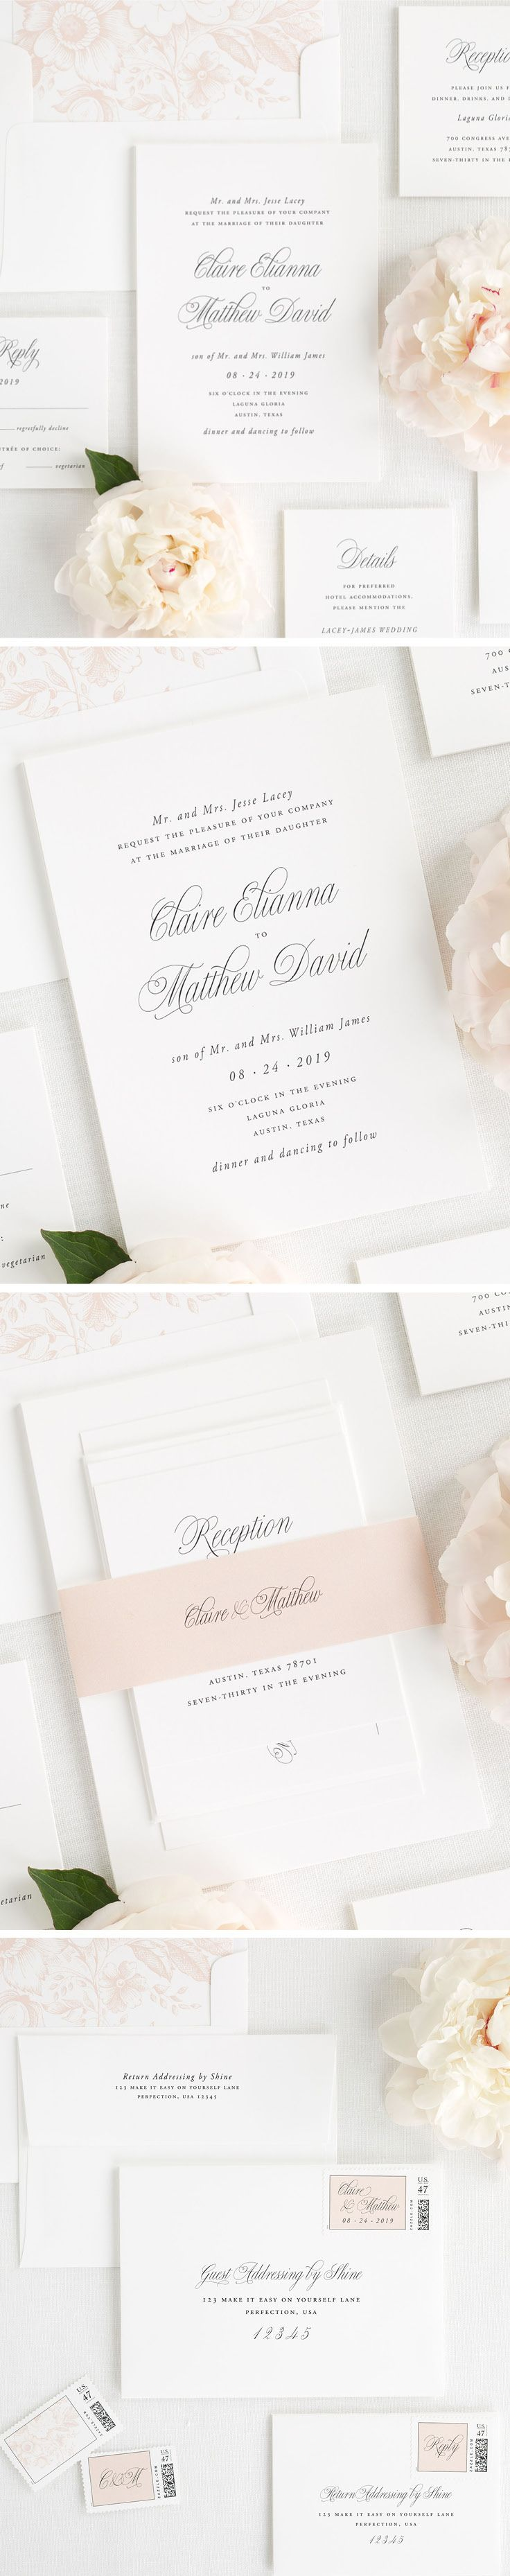 Romantic garden wedding invitations in blush pink with a floral envelope liner. Design your perfect wedding invitation with Shine. With addressing services, custom stamps, and envelope liners, there are so many ways to make this suite yours. Choose from over 40+ ink colors, several card stocks, and your choice of wording. Click here to create a wedding invitation suite that will stand the test of time.